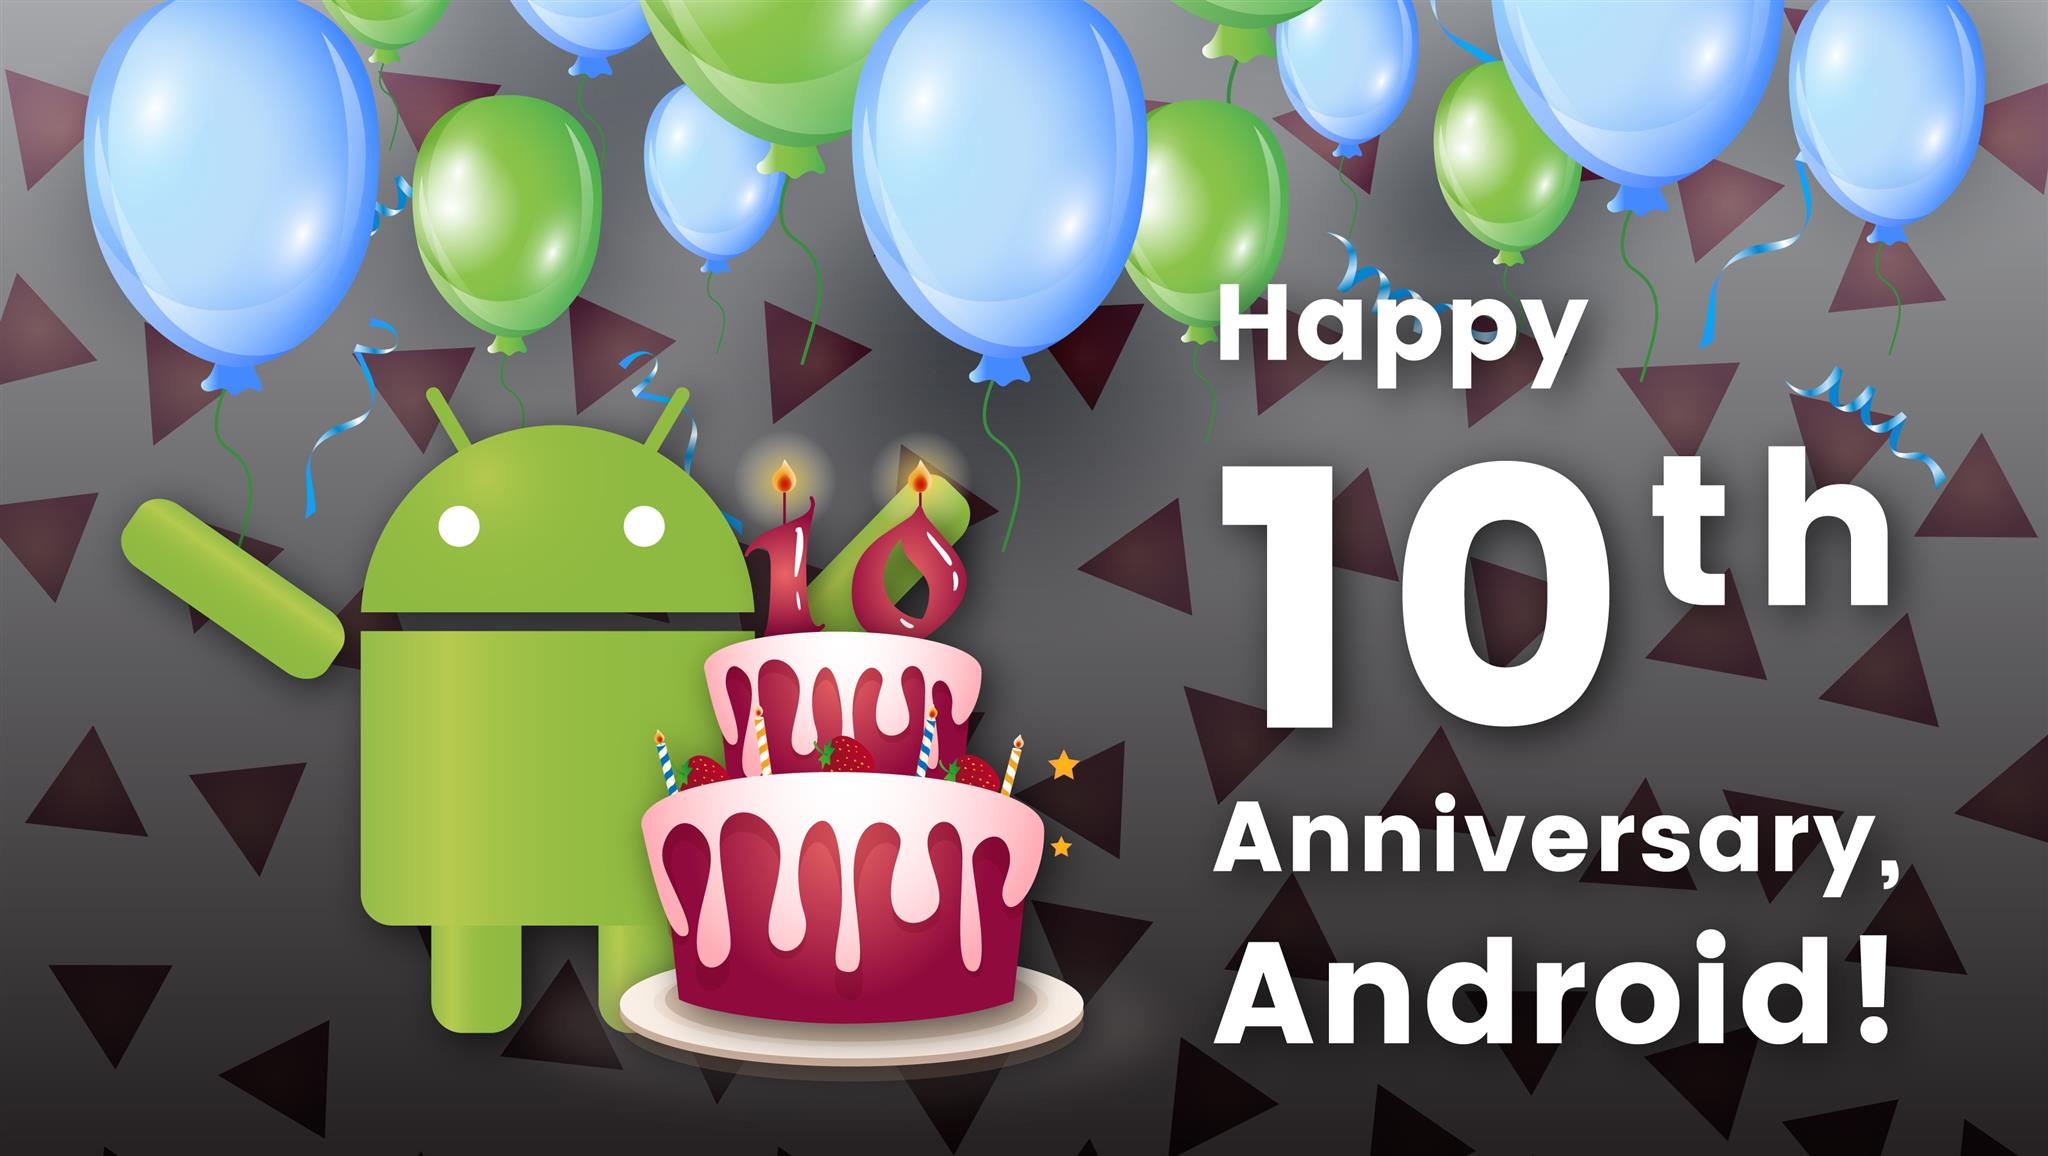 Happy 10th Anniversary, Android!